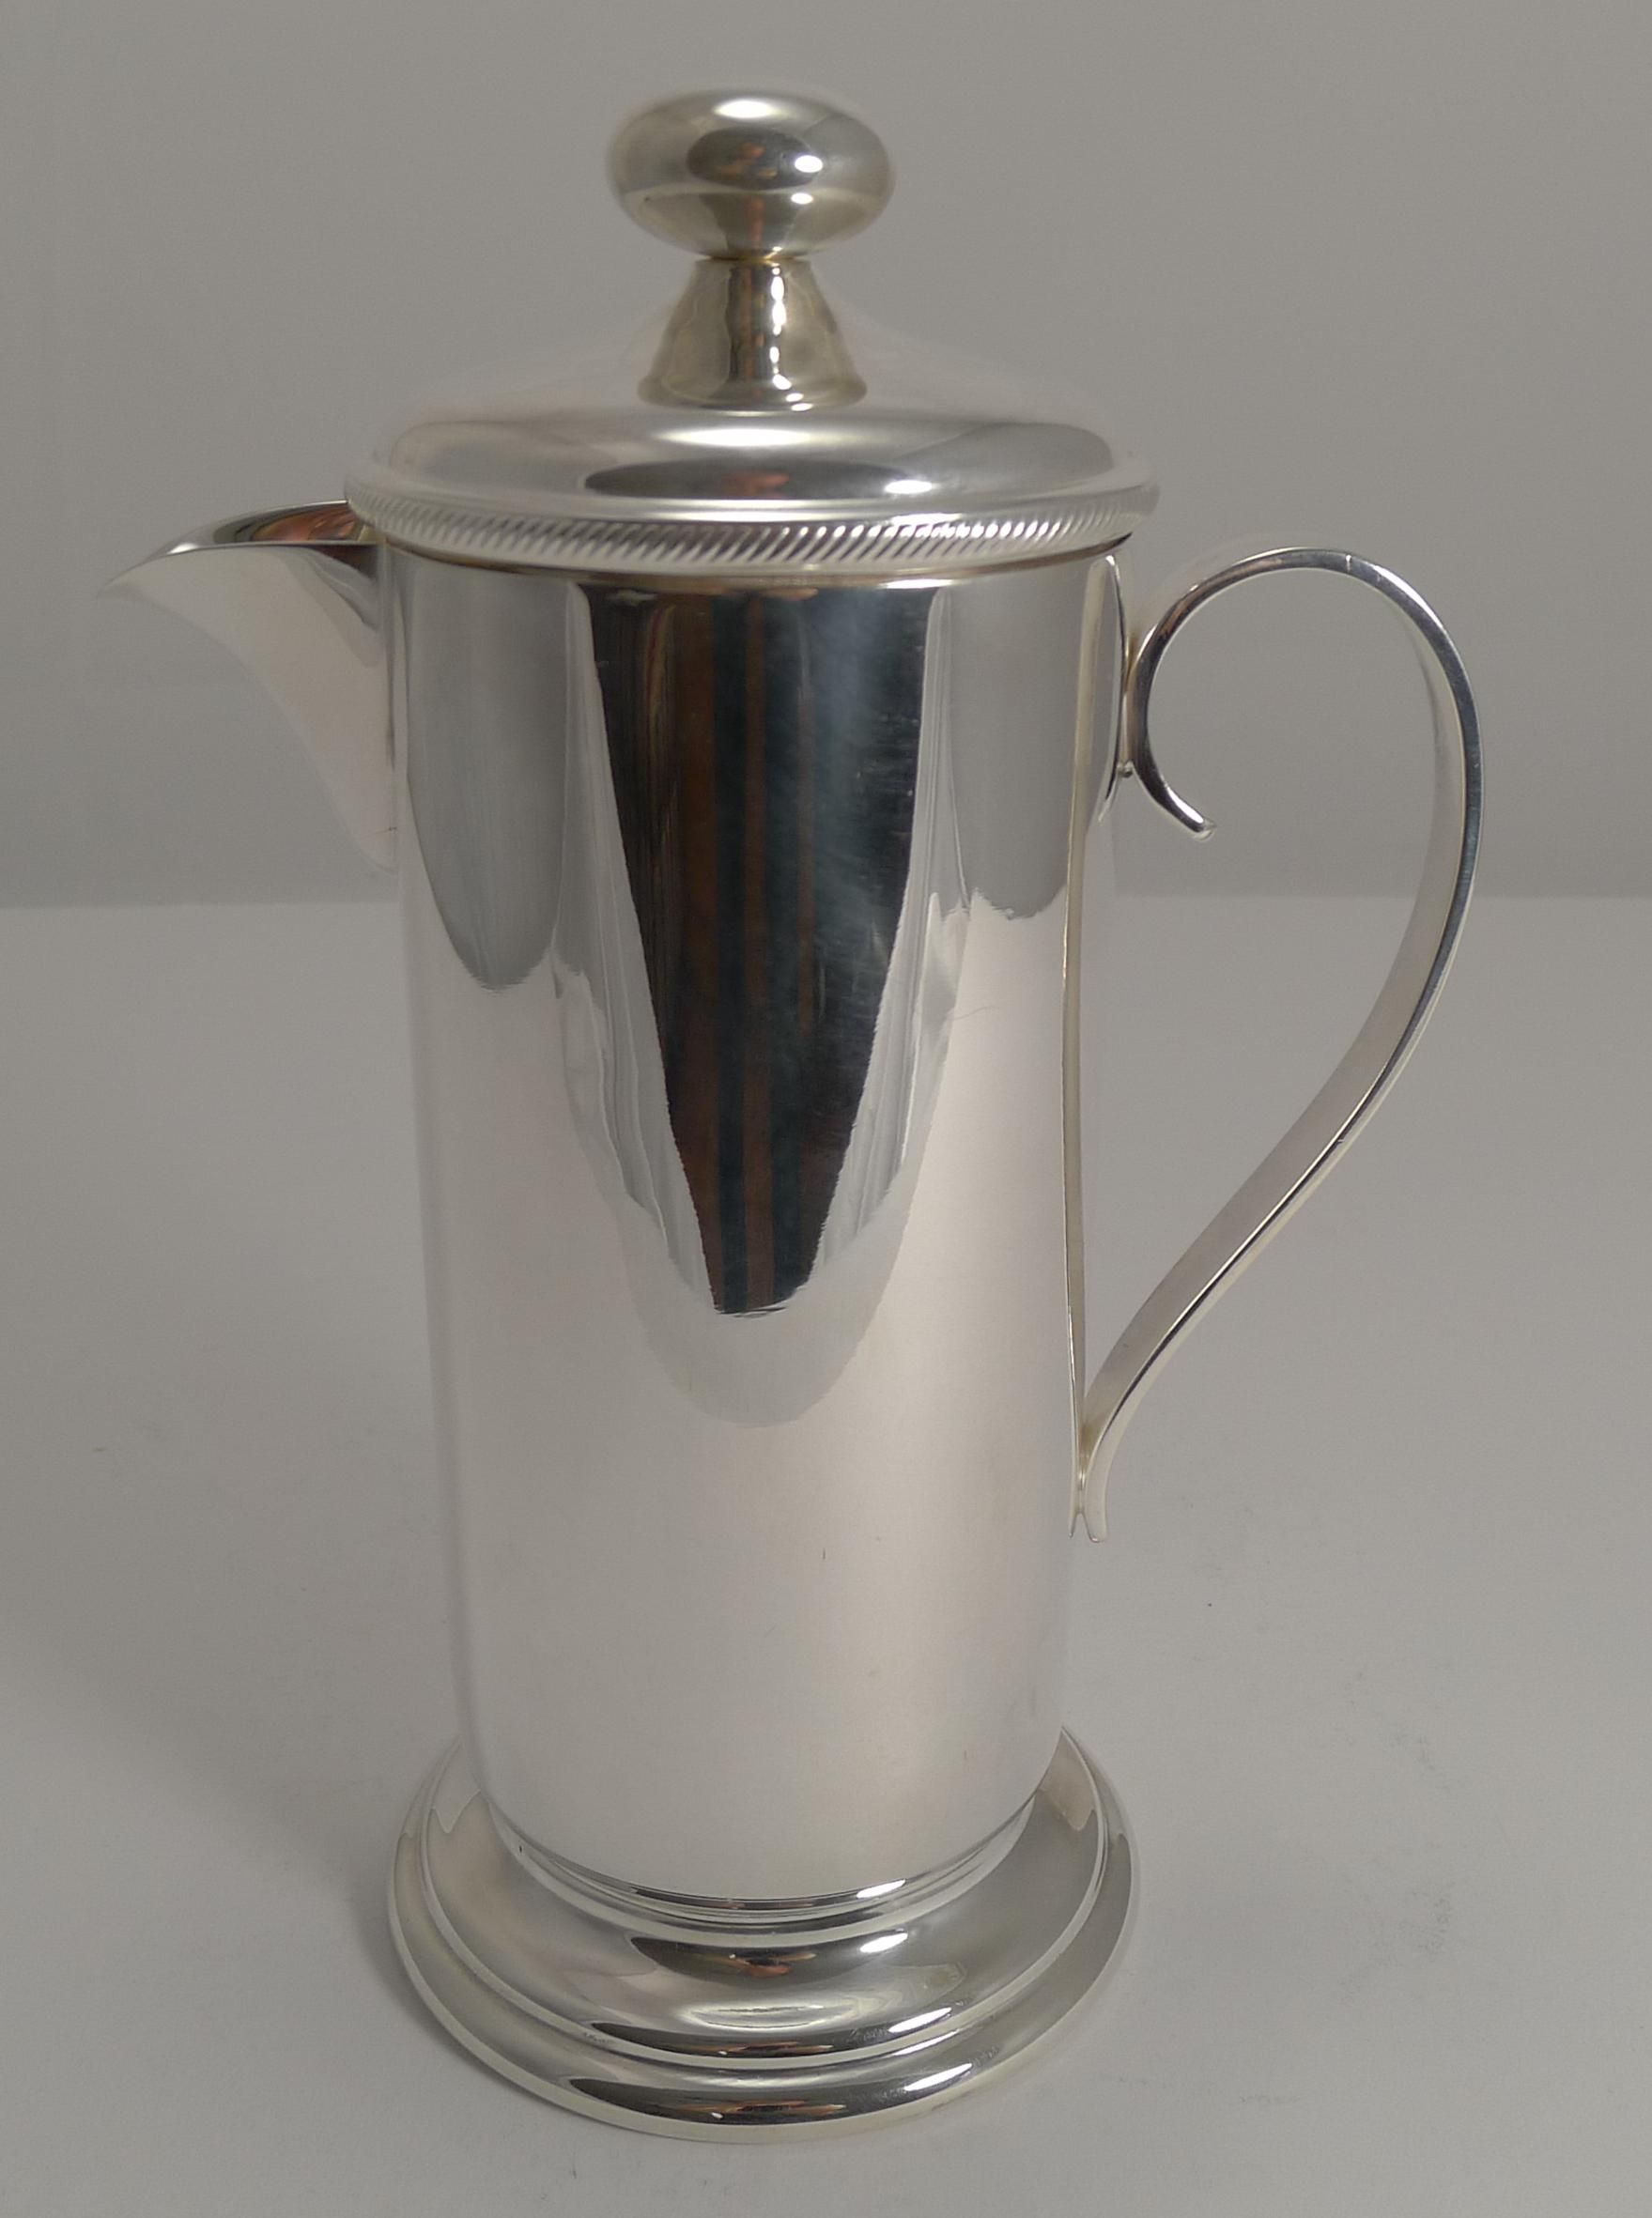 Vintage English Silver Plated Cocktail Mixer c.1920 - Top Maker